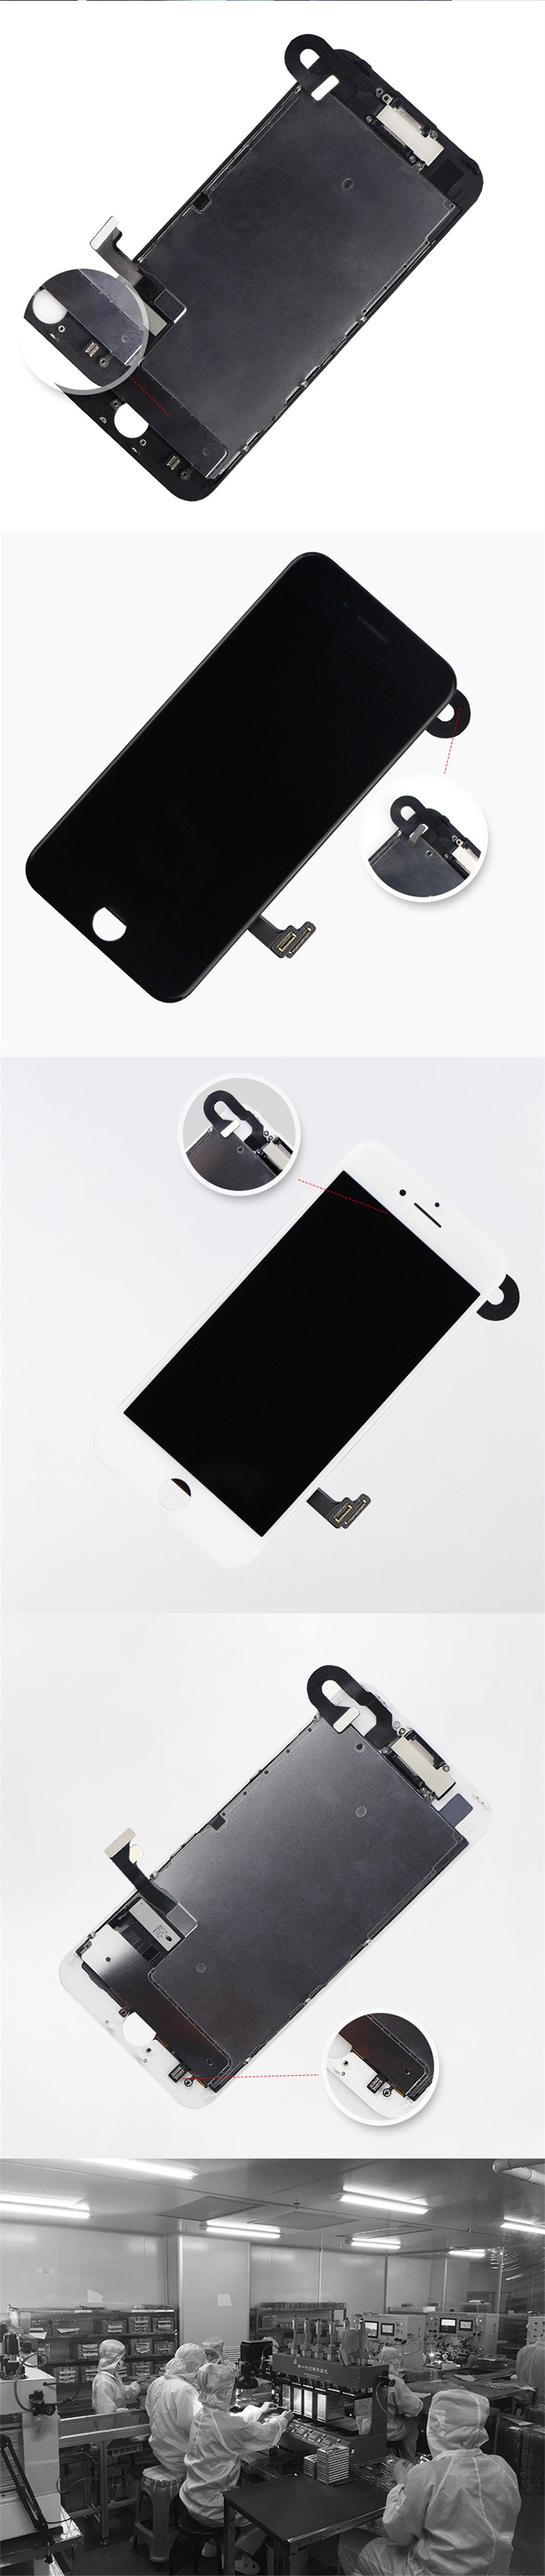 Replacement 7 Quality Display 11